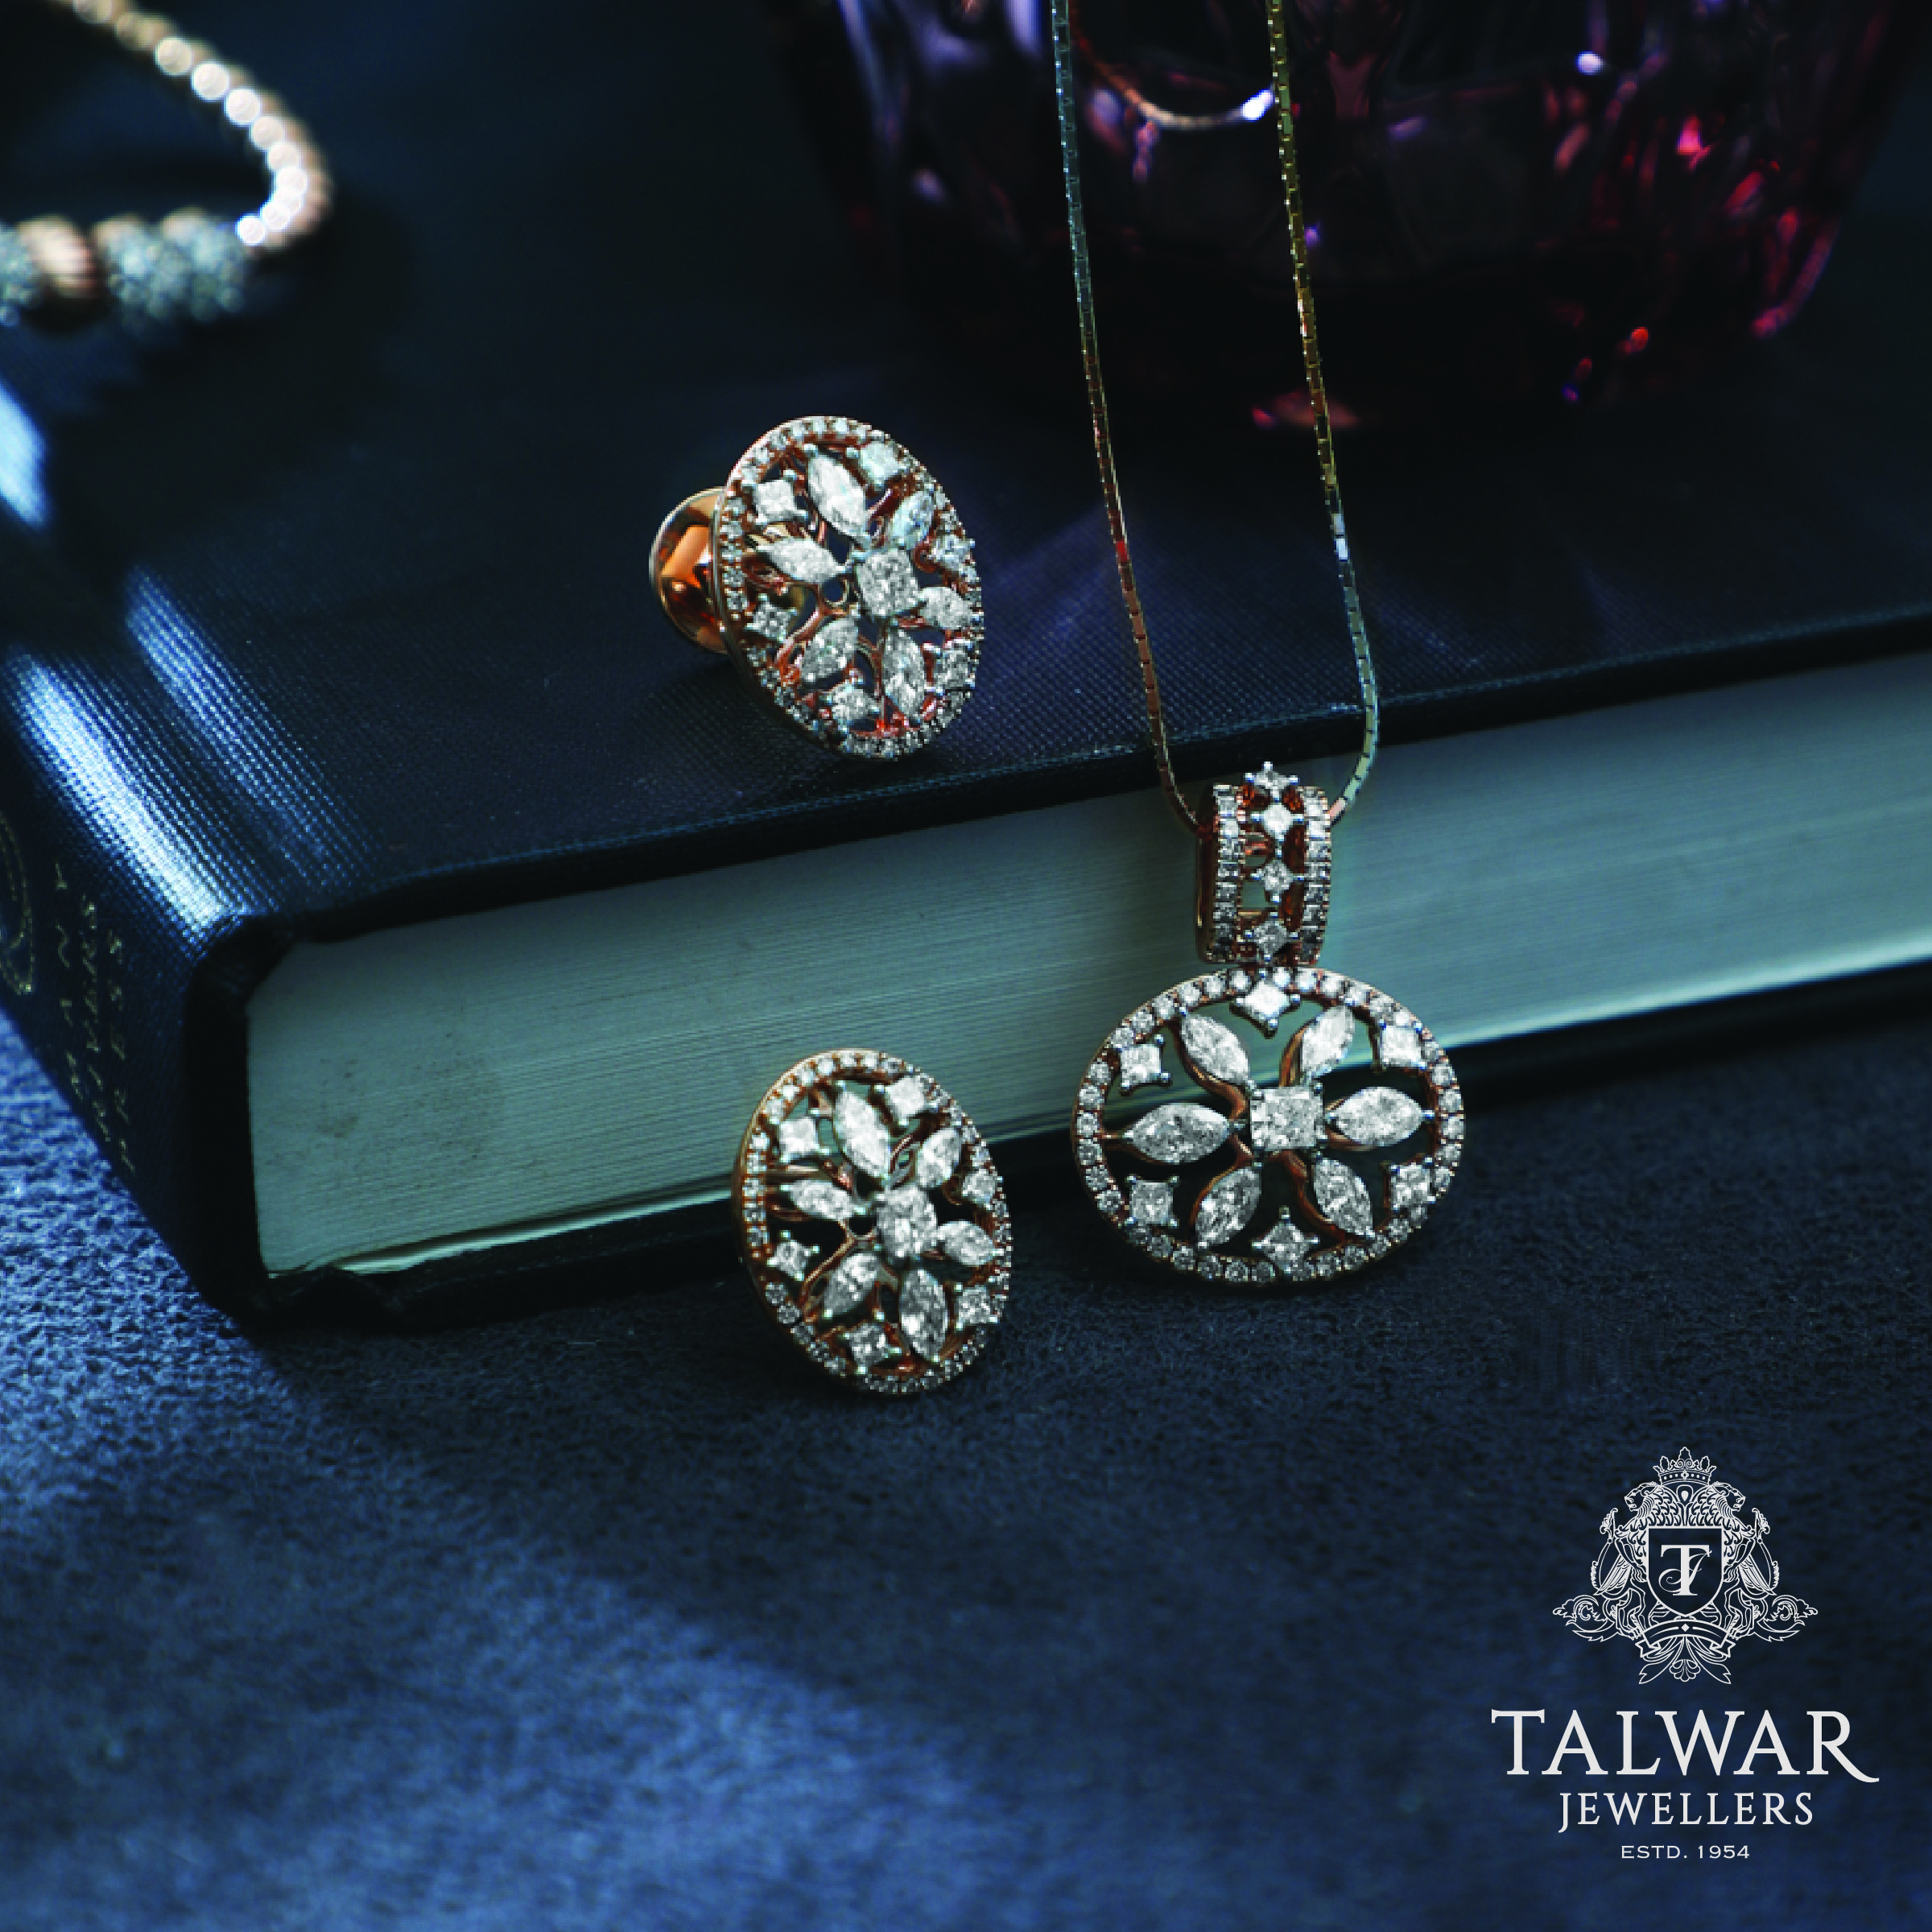 Founded in talwar jewellers is one of the oldest and most